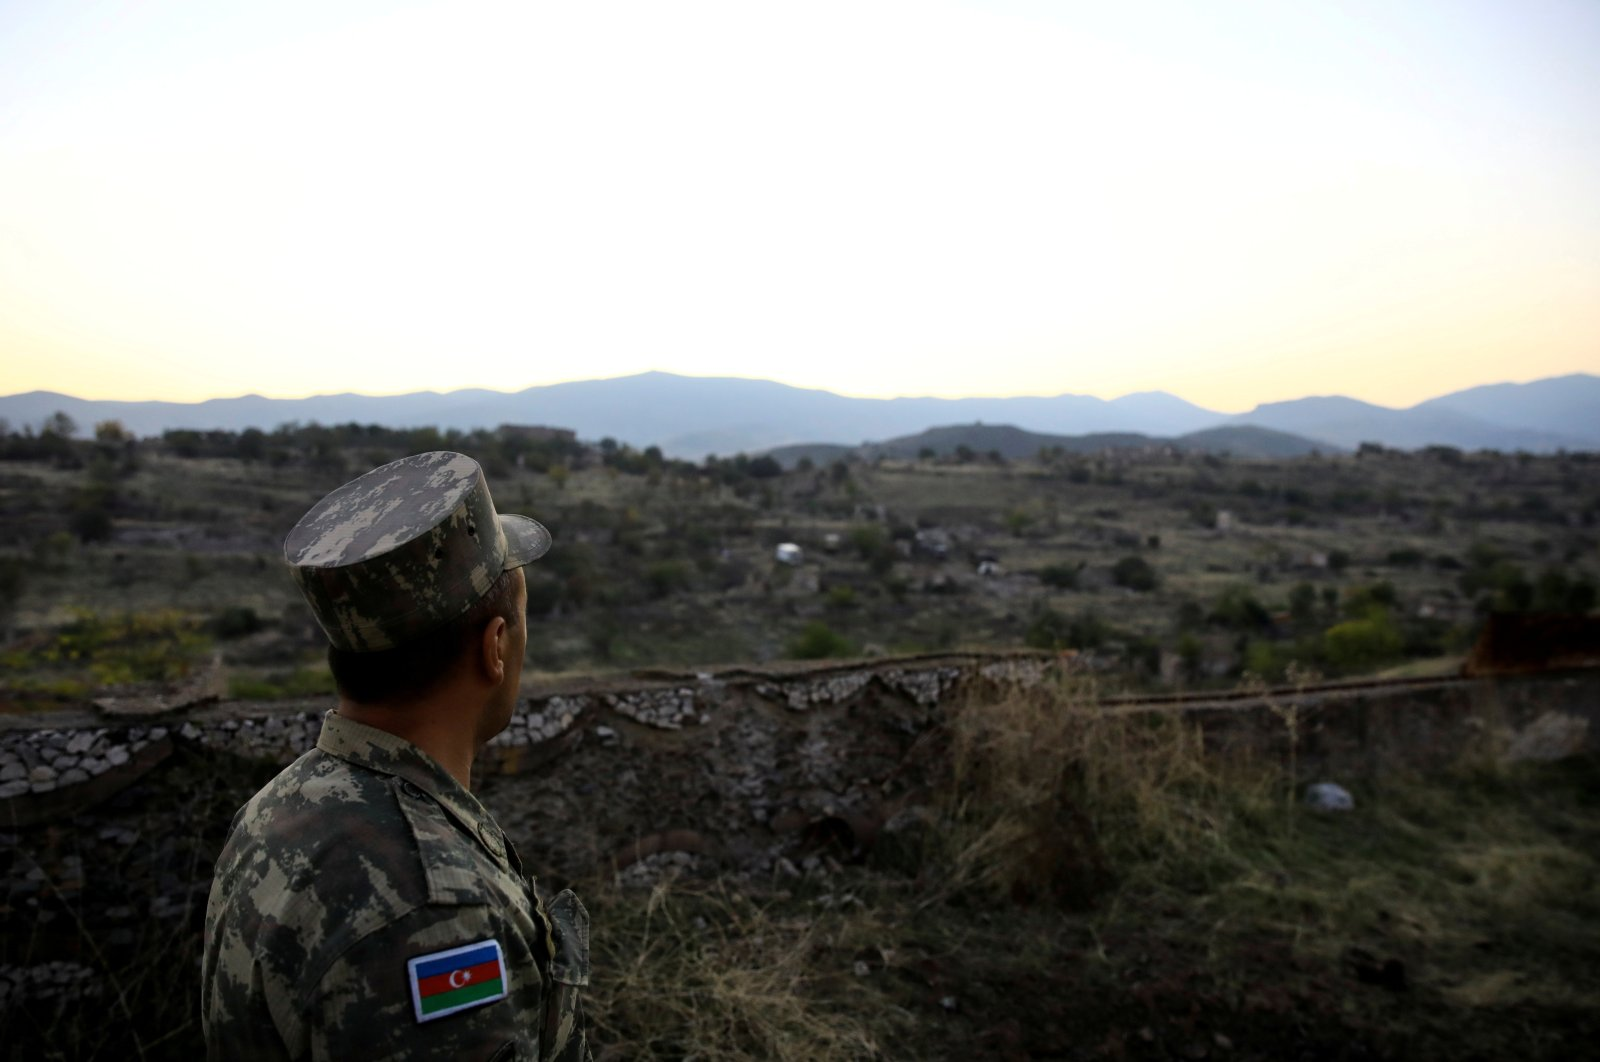 An Azerbaijani soldier inspects the city of Cebrayil, where Azerbaijani forces regained control during the fighting over the illegally occupied region of Nagorno-Karabakh, Azerbaijan October 16, 2020. (Reuters Photo)